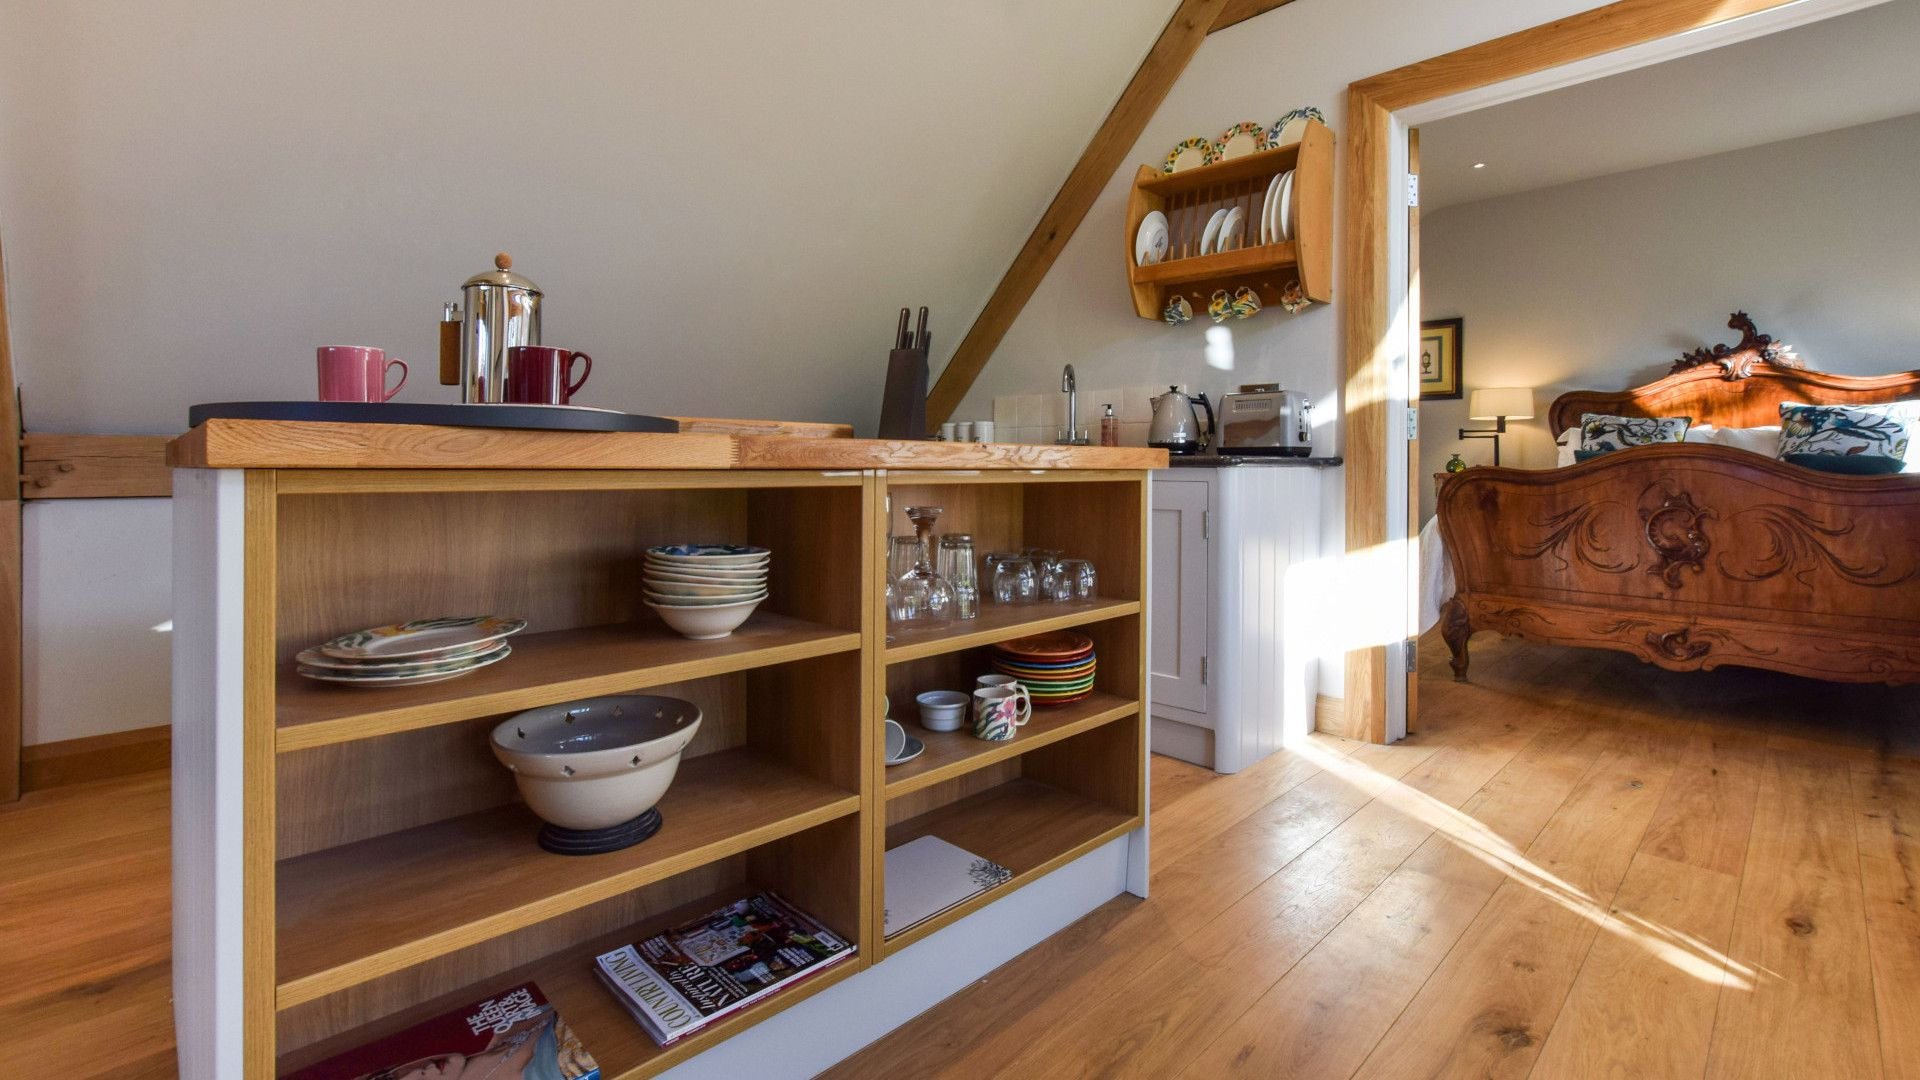 Kitchen and bedroom, Sycamore, Bolthole Retreats